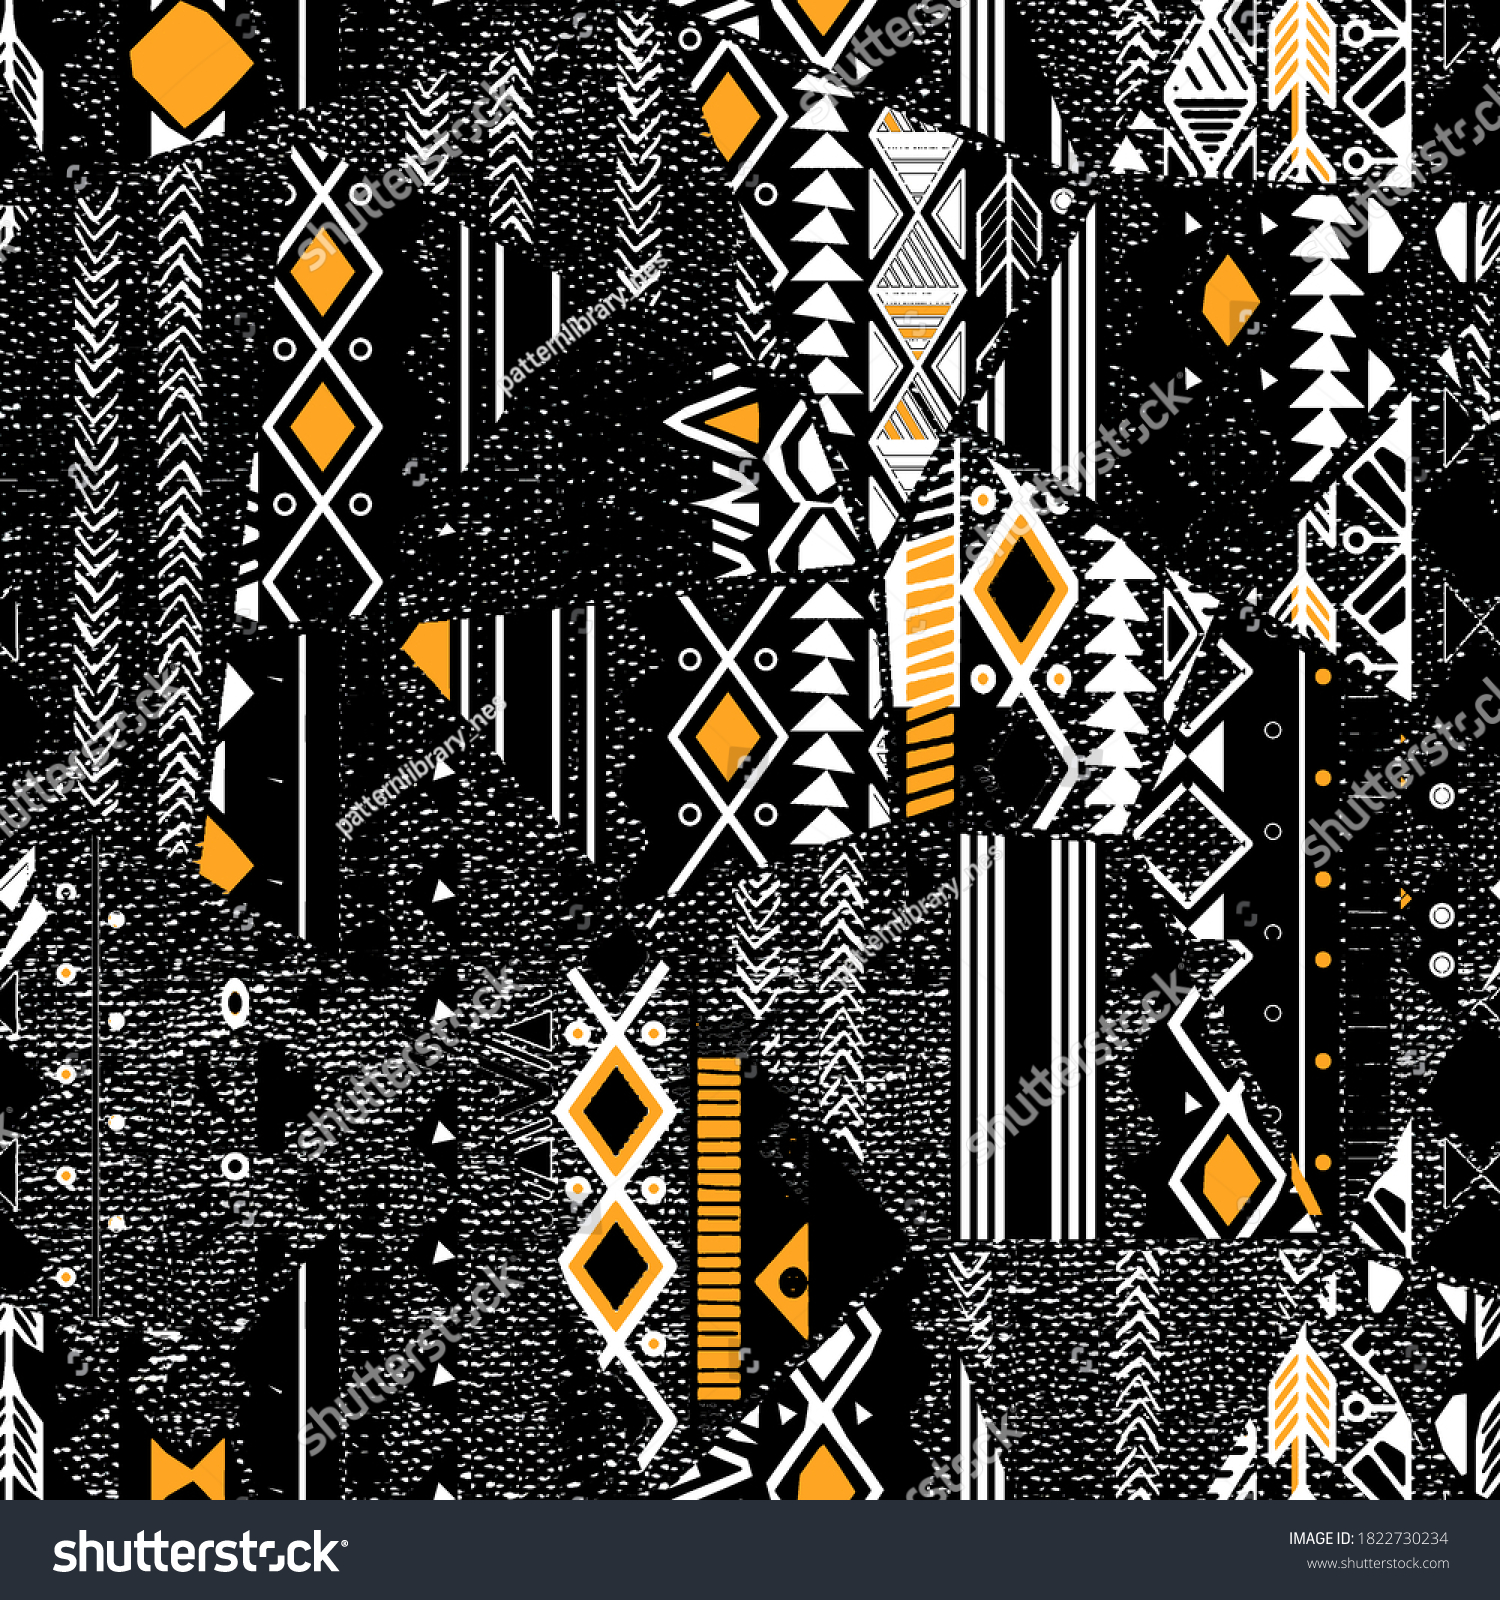 Fashionable and trendy  collage seamless pattern with  tribal pattern. Grunge texture. Bohemian style print wallpaper motif